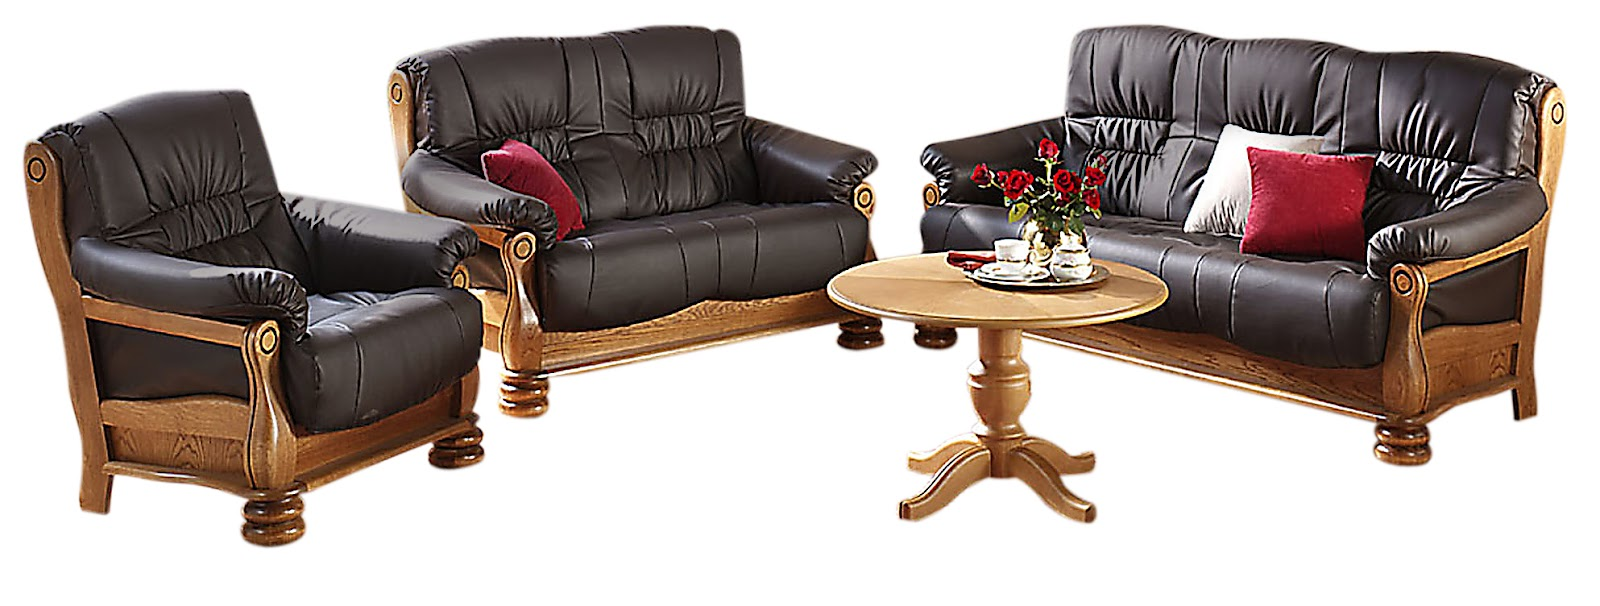 Furniture Design Sofa Set fine wooden sofa furniture buy sets in india inside design inspiration